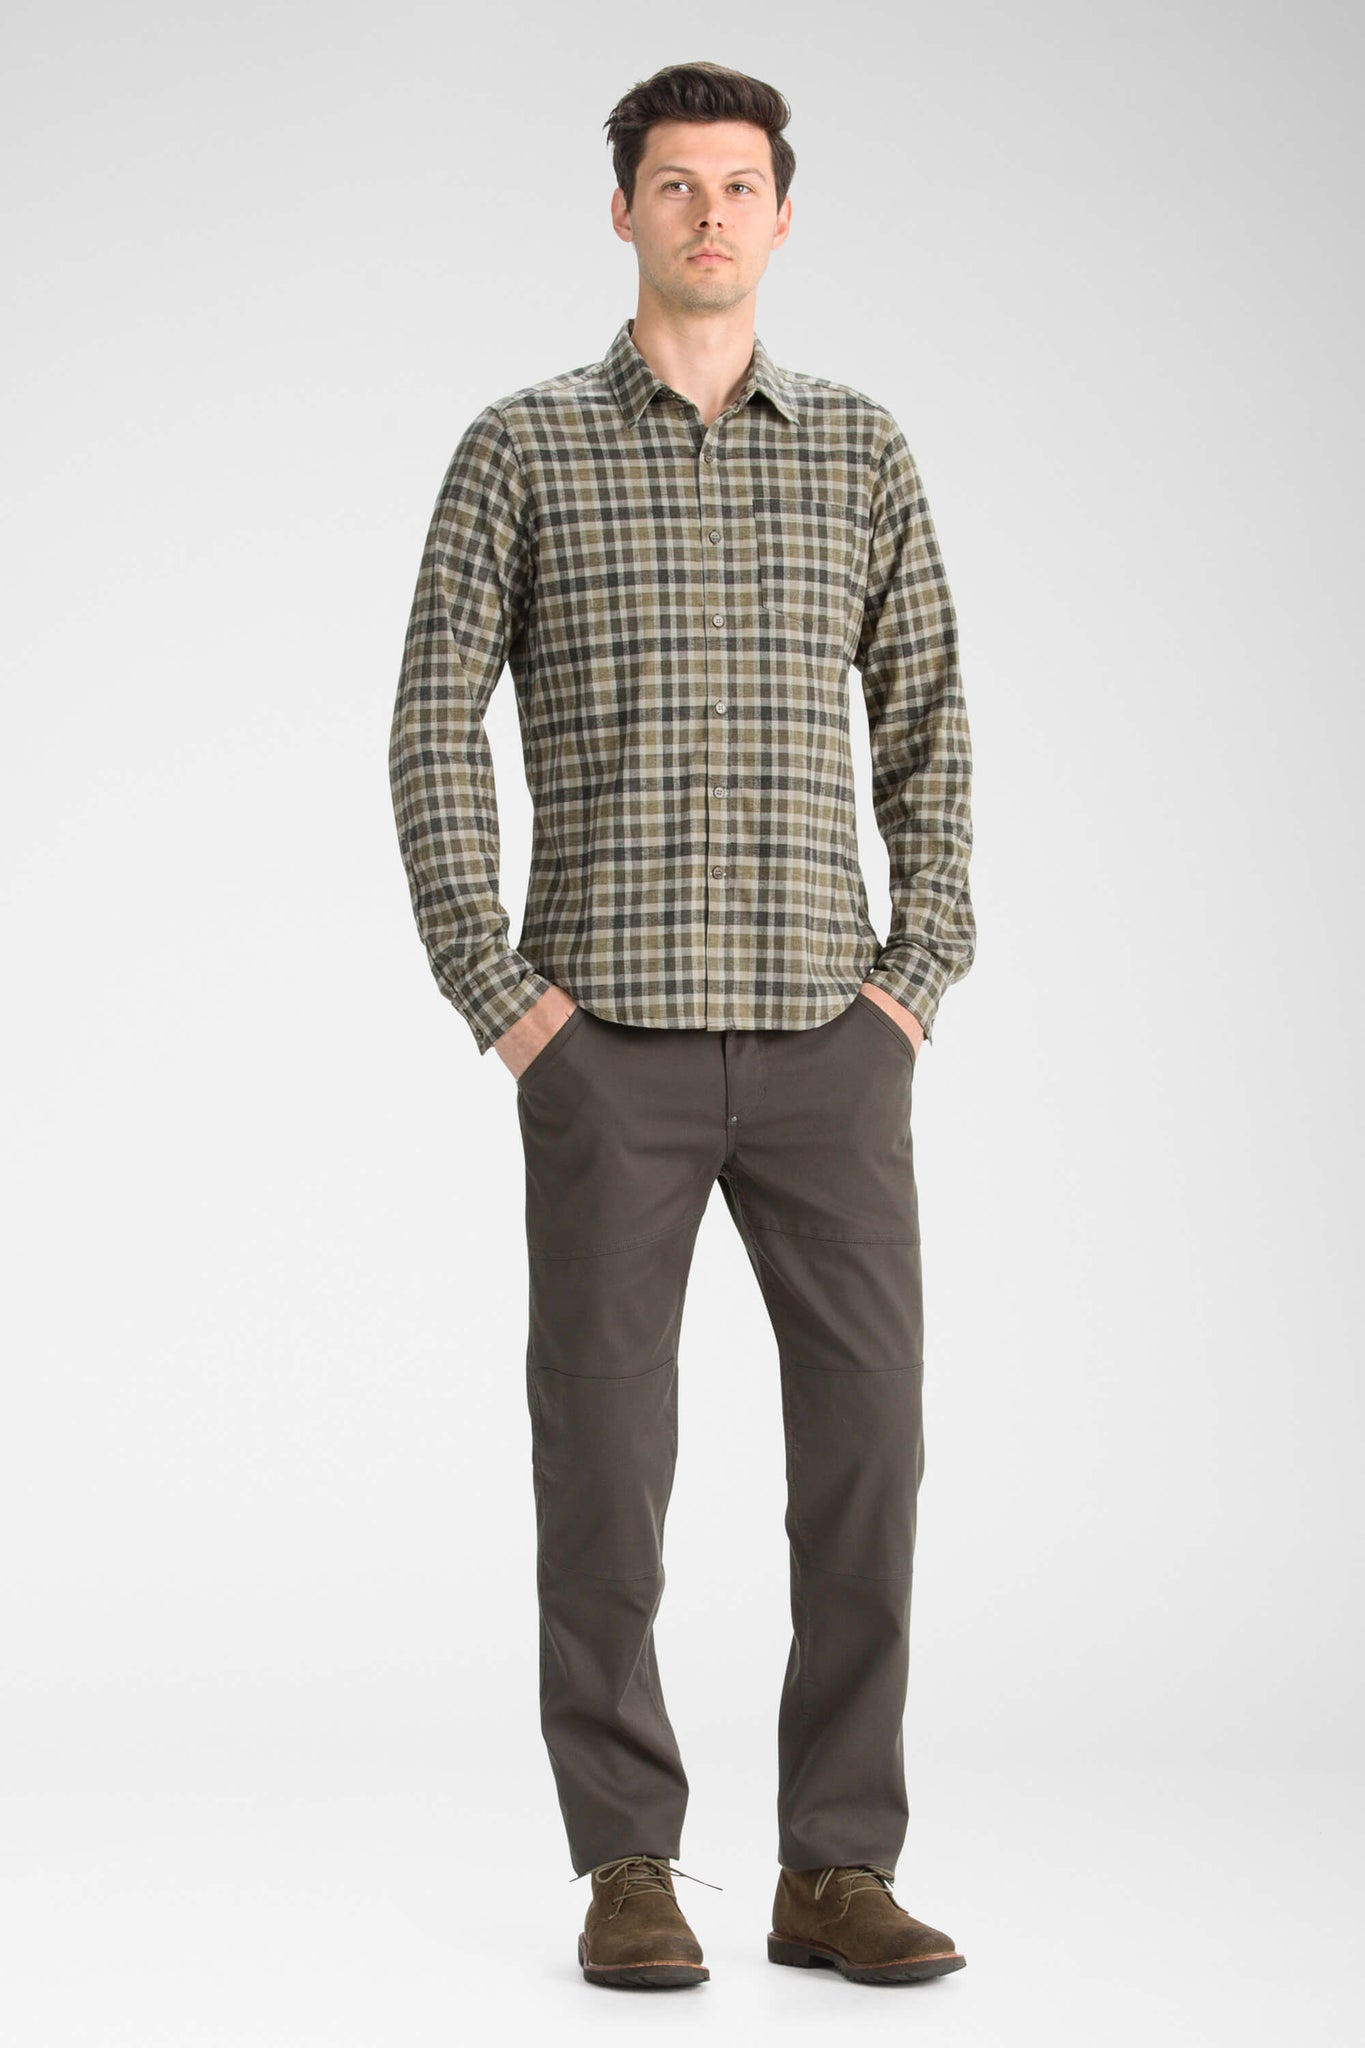 men's long sleeve hemp blend checkout shirt - peat plaid